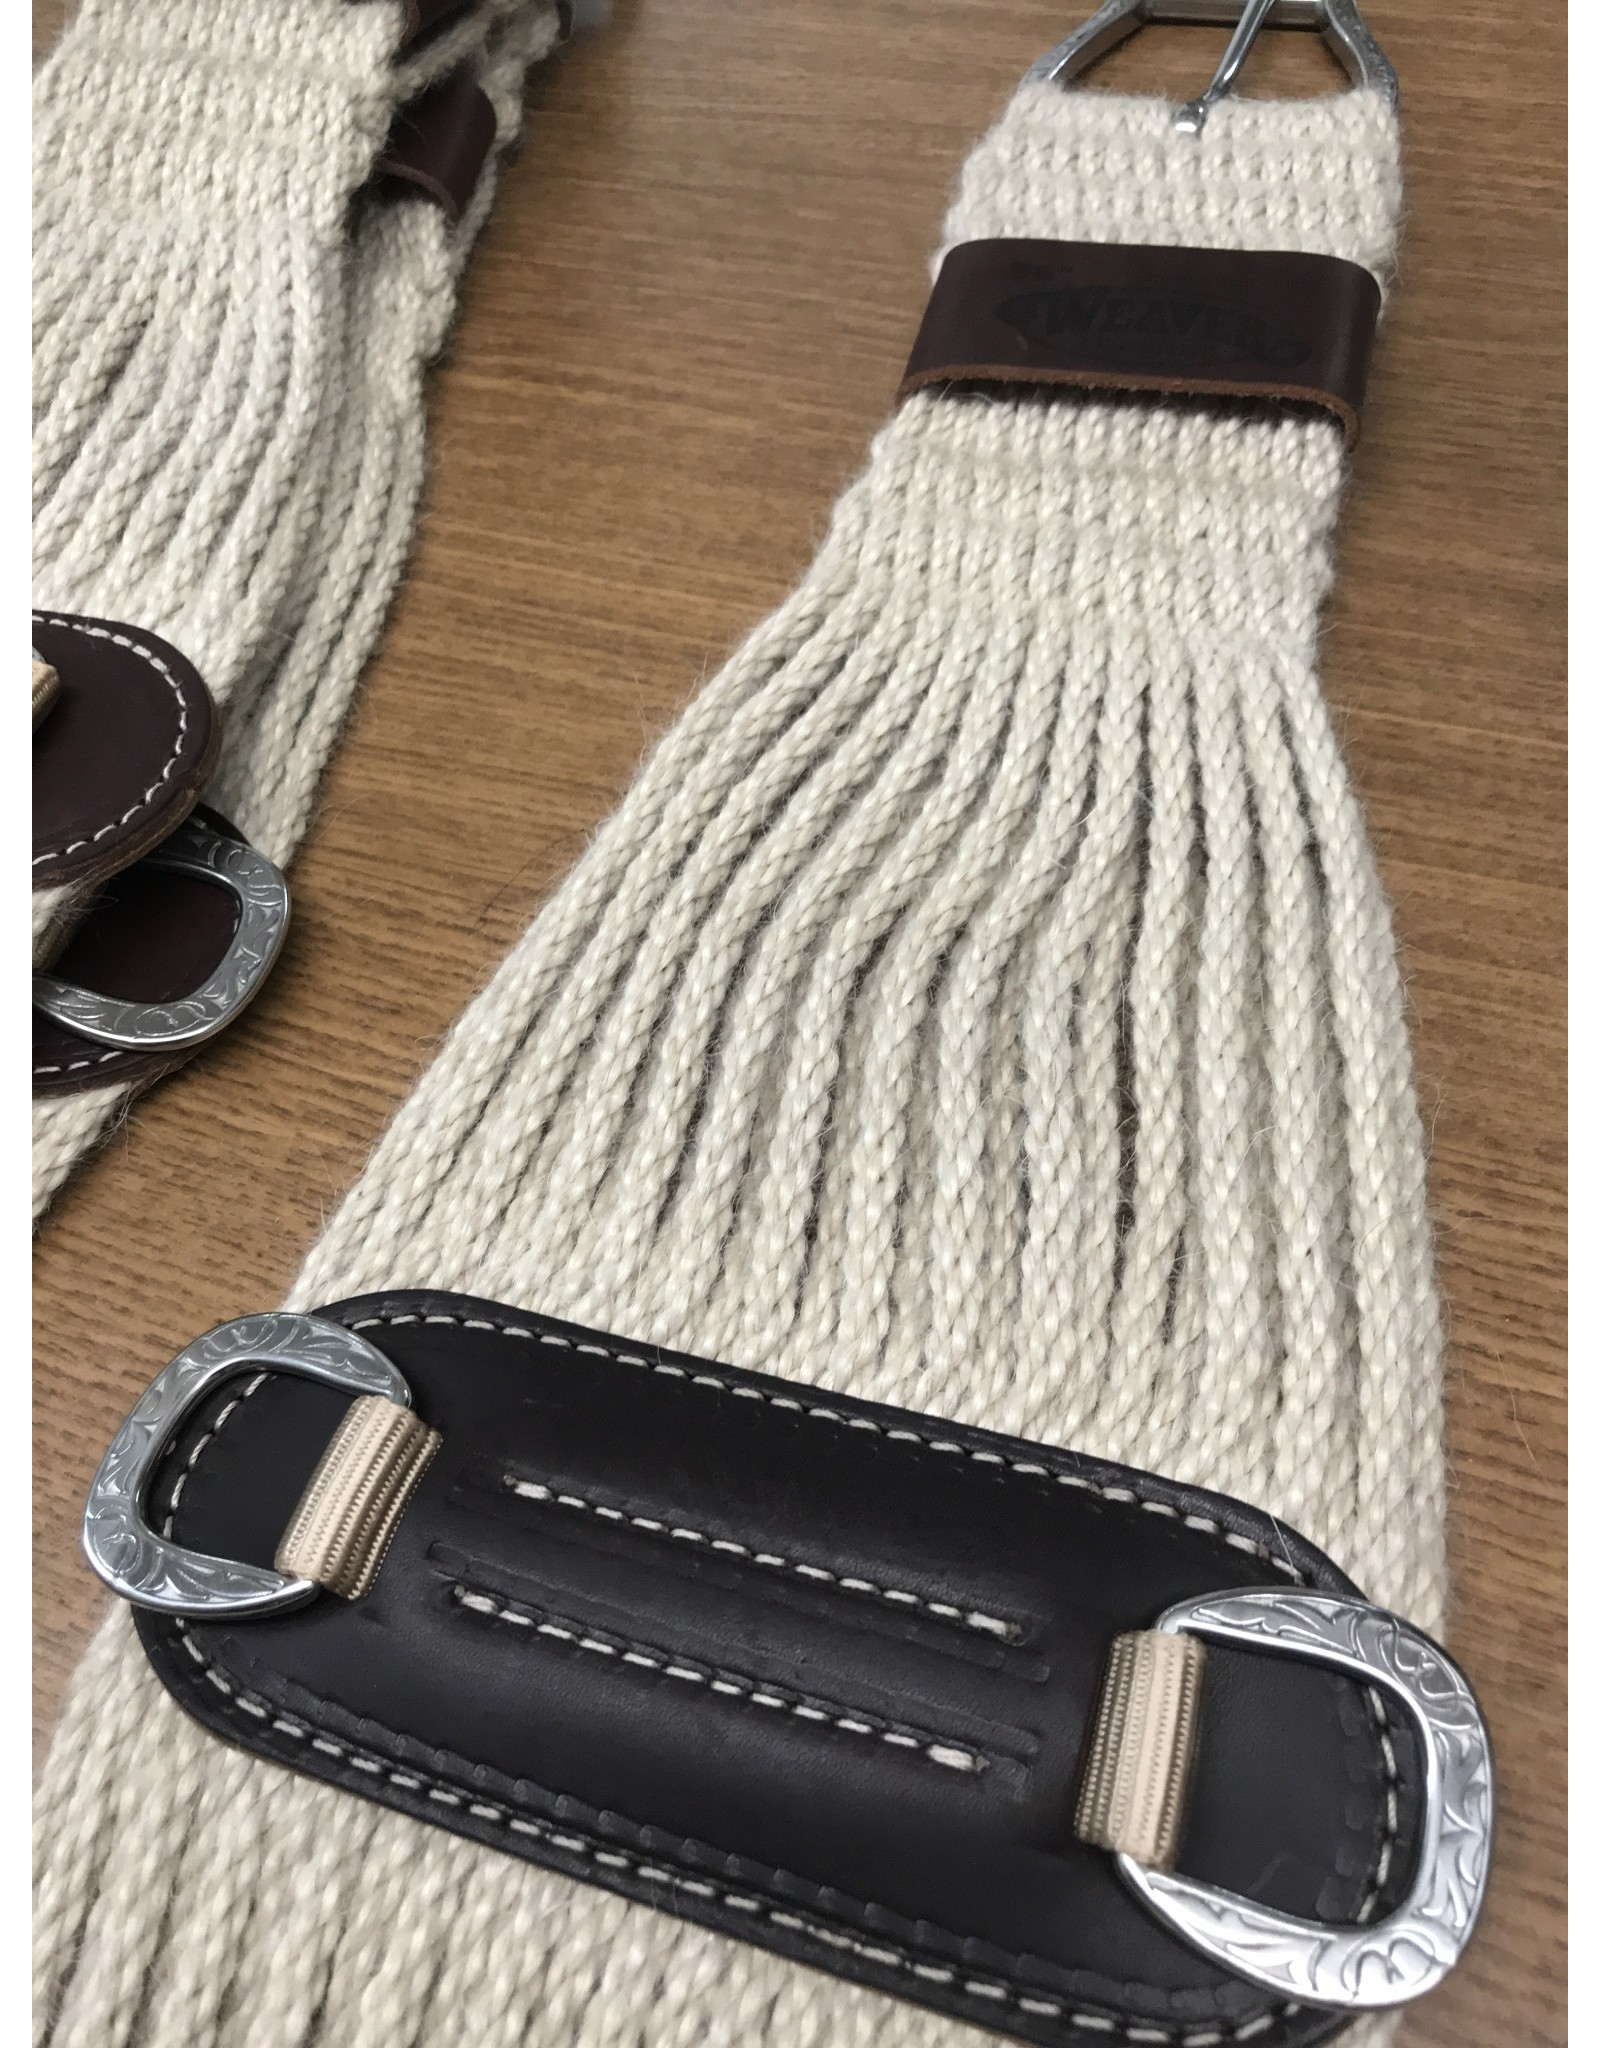 CIN* 100% Mohair Roper Cinch 28''    35-2436-28   AAAA*P (fancy roller buckles and one side leather cinch holder)